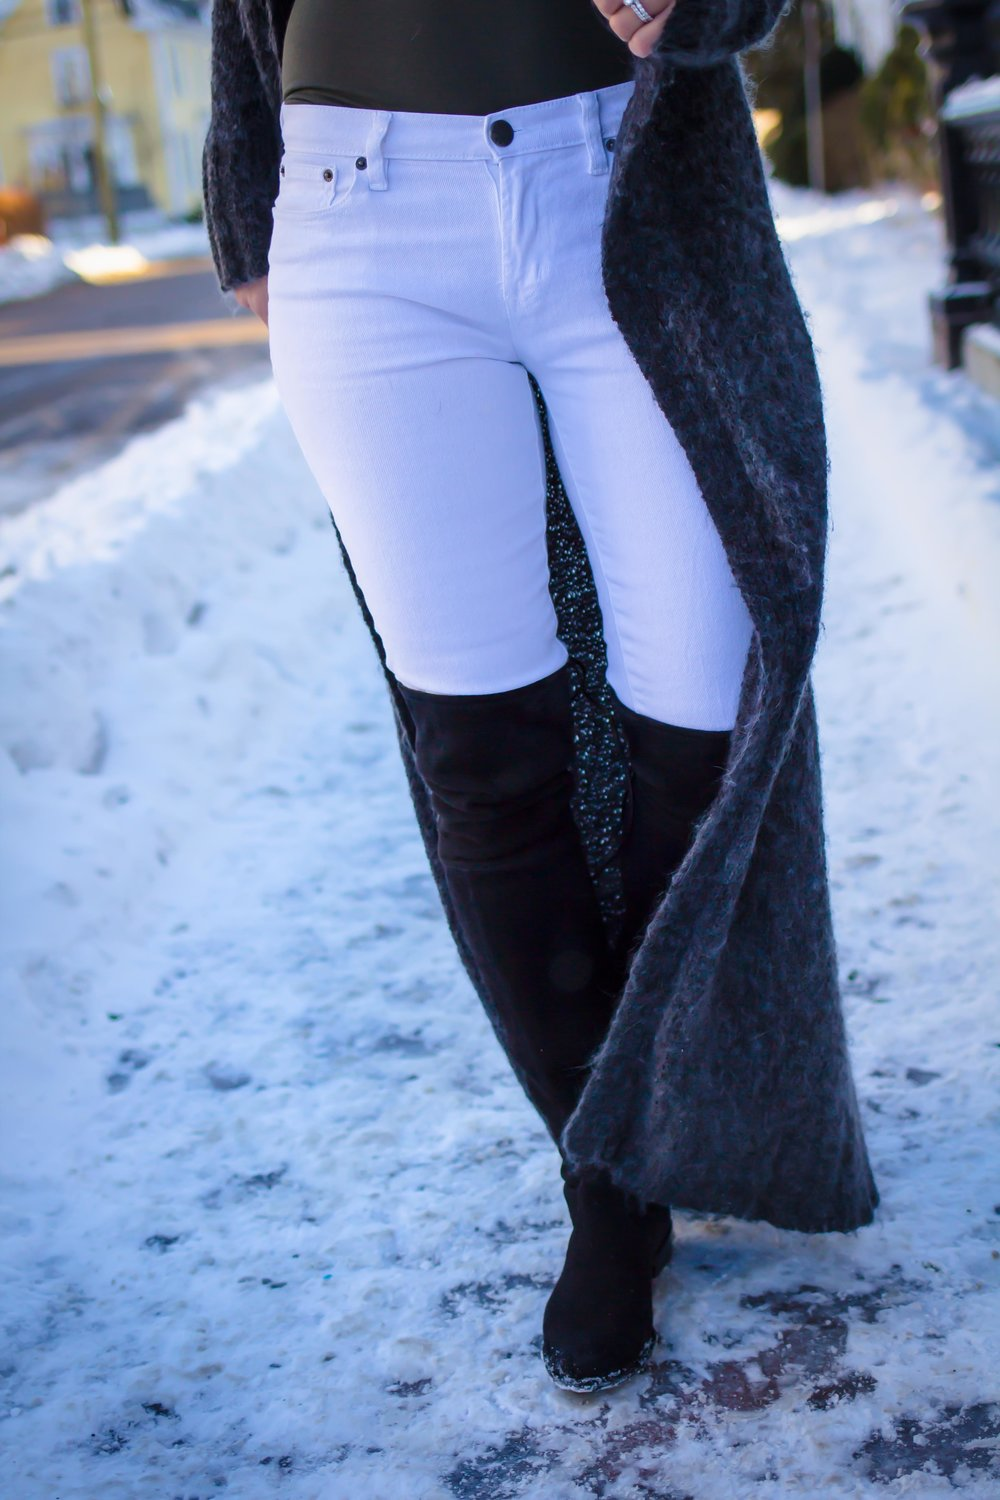 Casual Friday Outfits - Casual Work Outfits - Casual Weekend Outfits - OTK Boots Outfit - White Denim Outfits - Winter White Outfits - Fashion for Women -  heartandseam.com  #heartandseam